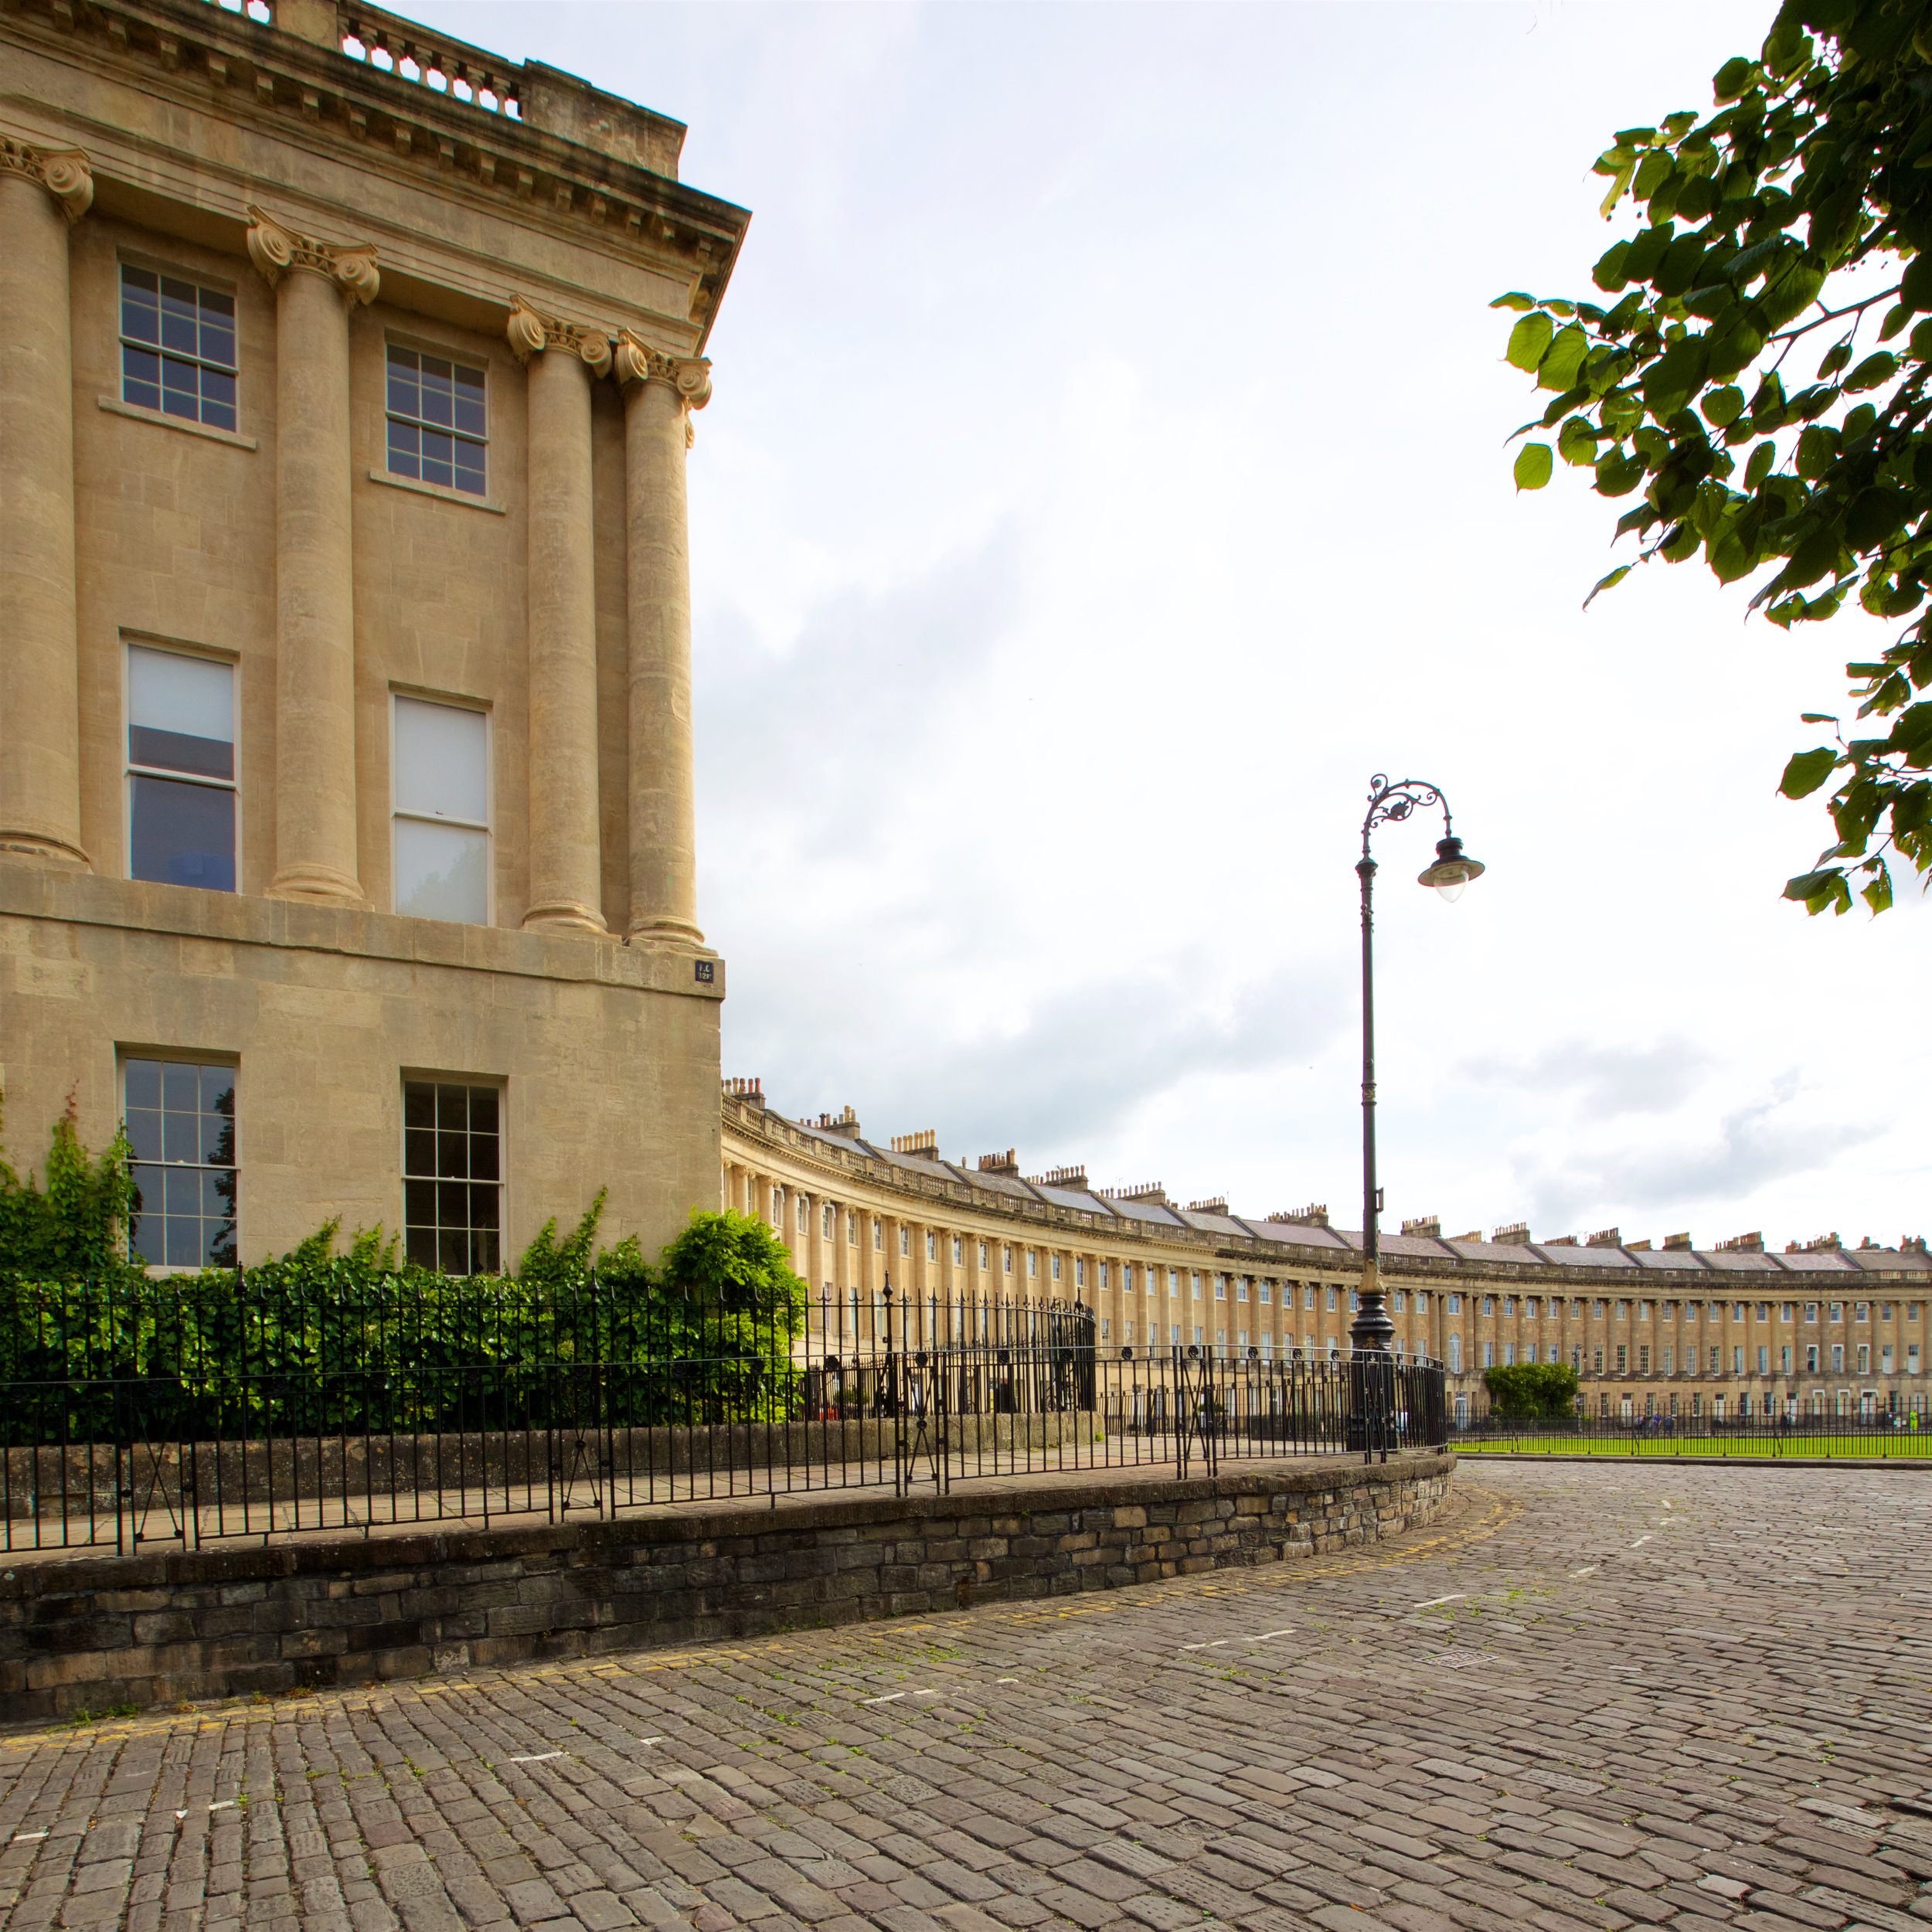 Royal_Crescent_(11).jpg